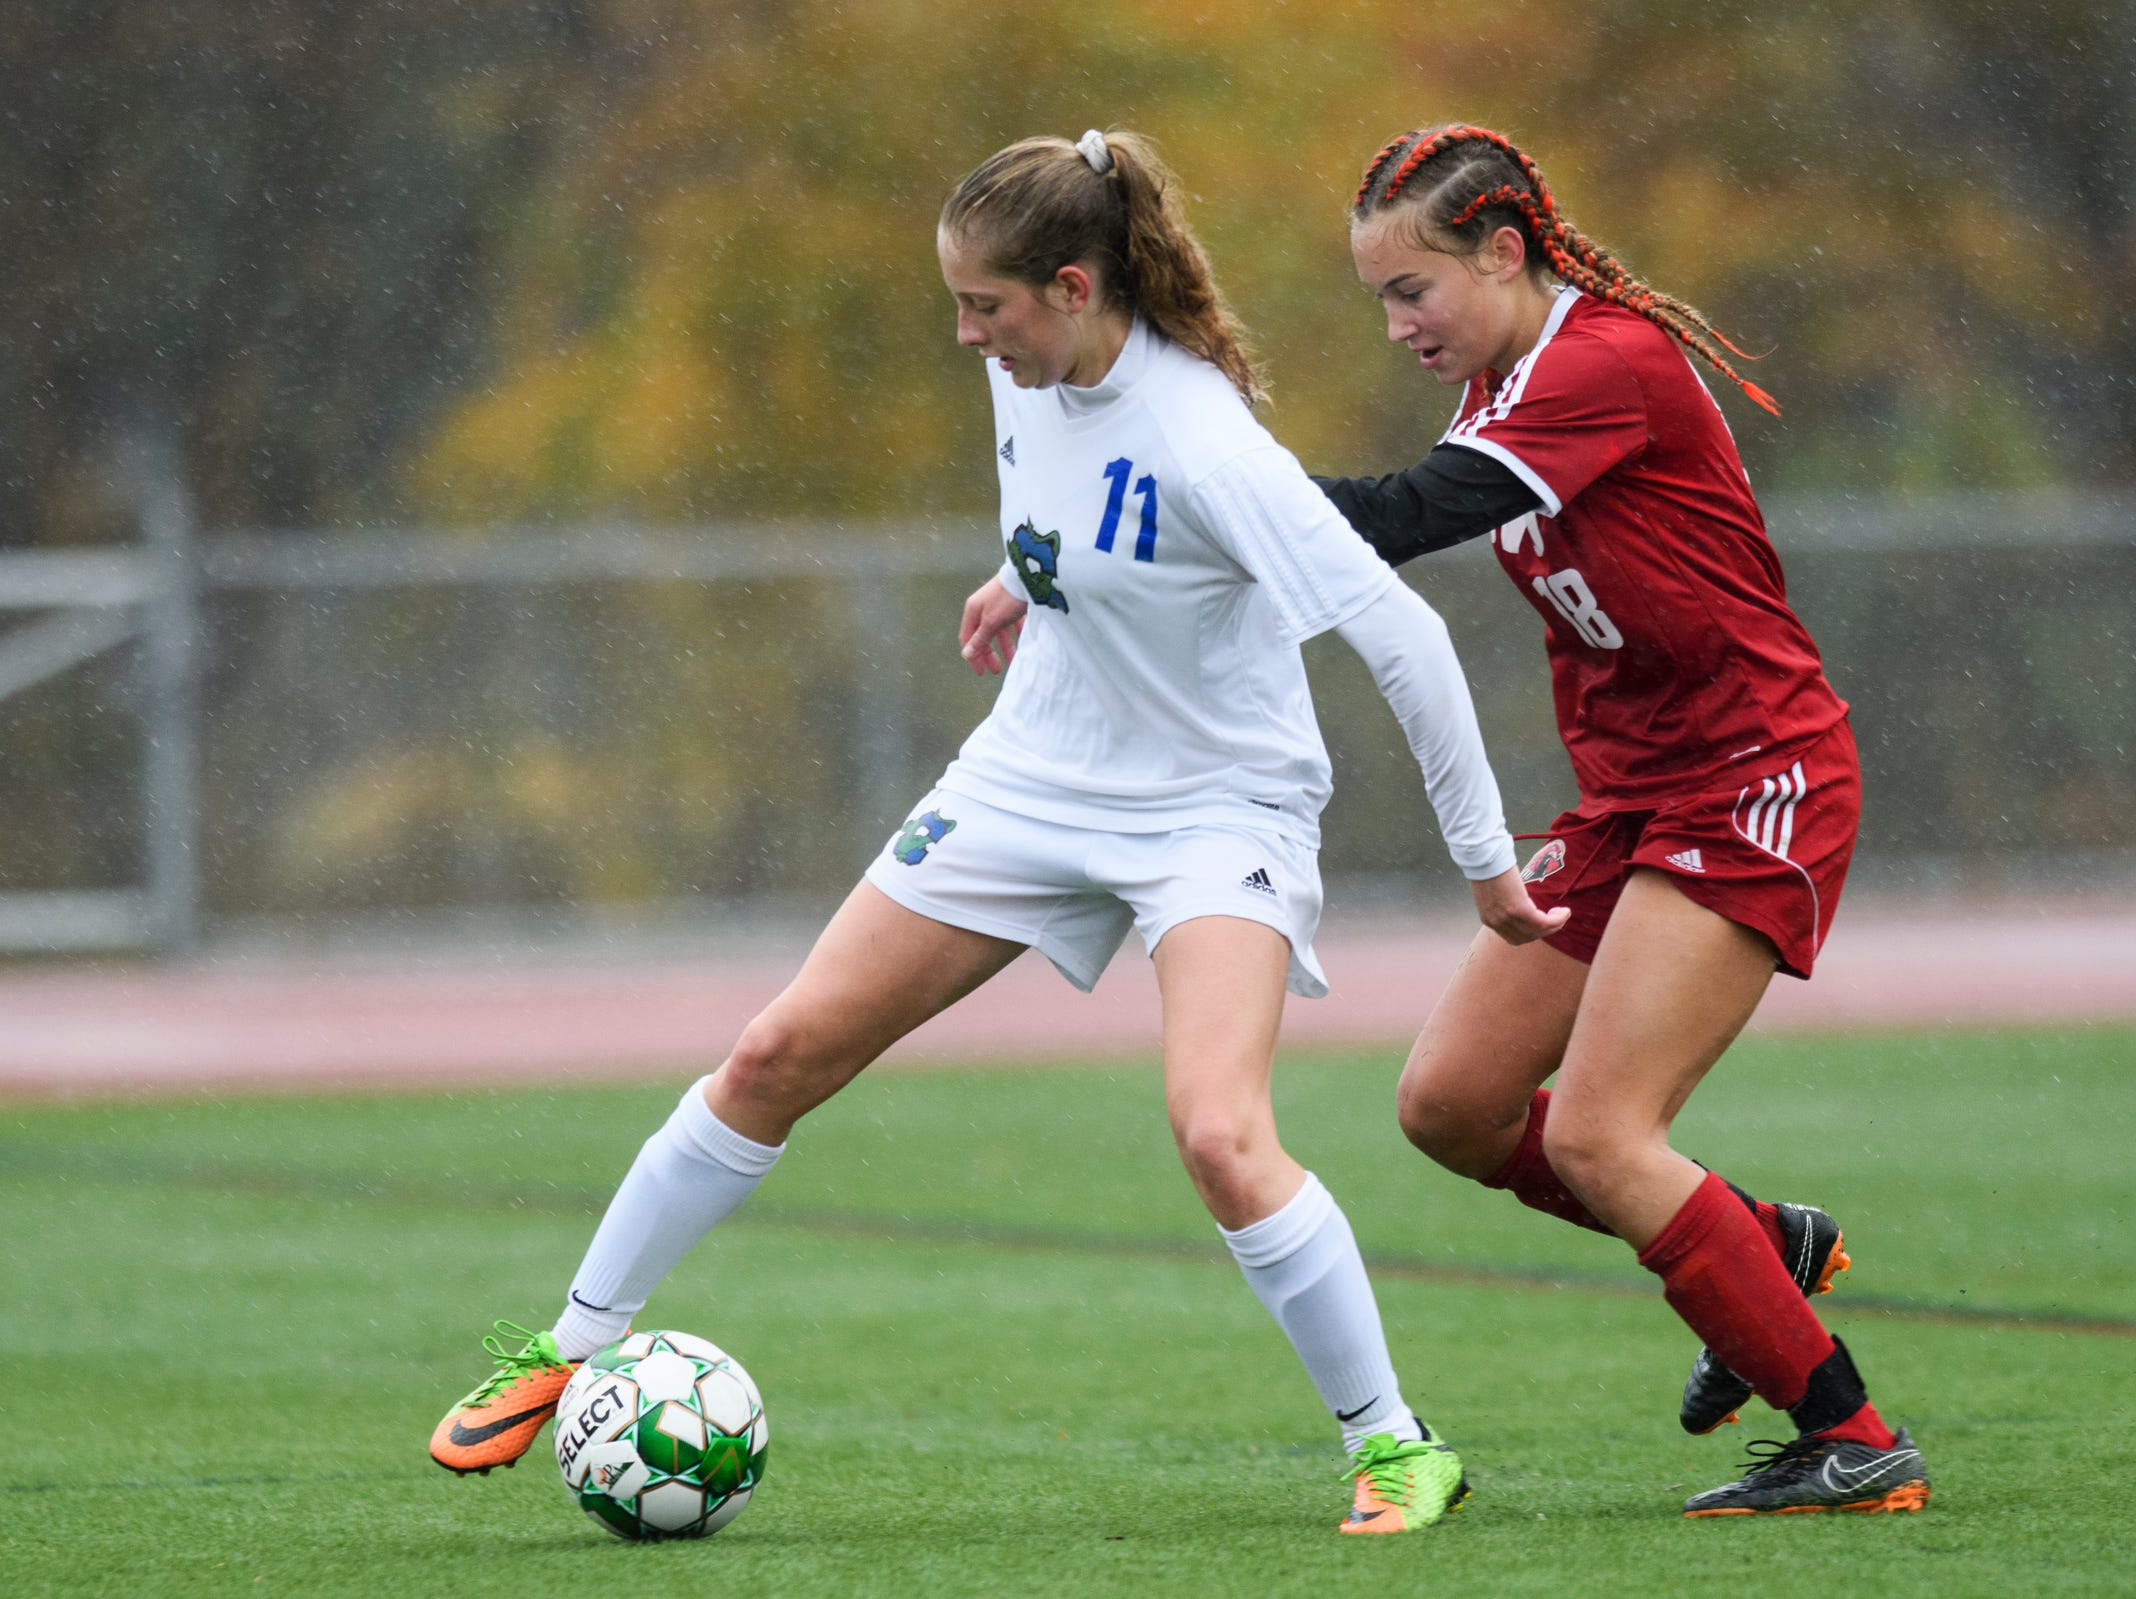 CVU's Elizah Jacobs (18) battles for the ball with Colchester's Jessica Laquerre (11) during the division I girls soccer championship game between the Colchester Lakers and the Champlain Valley Union Redhawks at Buck Hard Field on Saturday morning November 3, 2018 in Burlington.